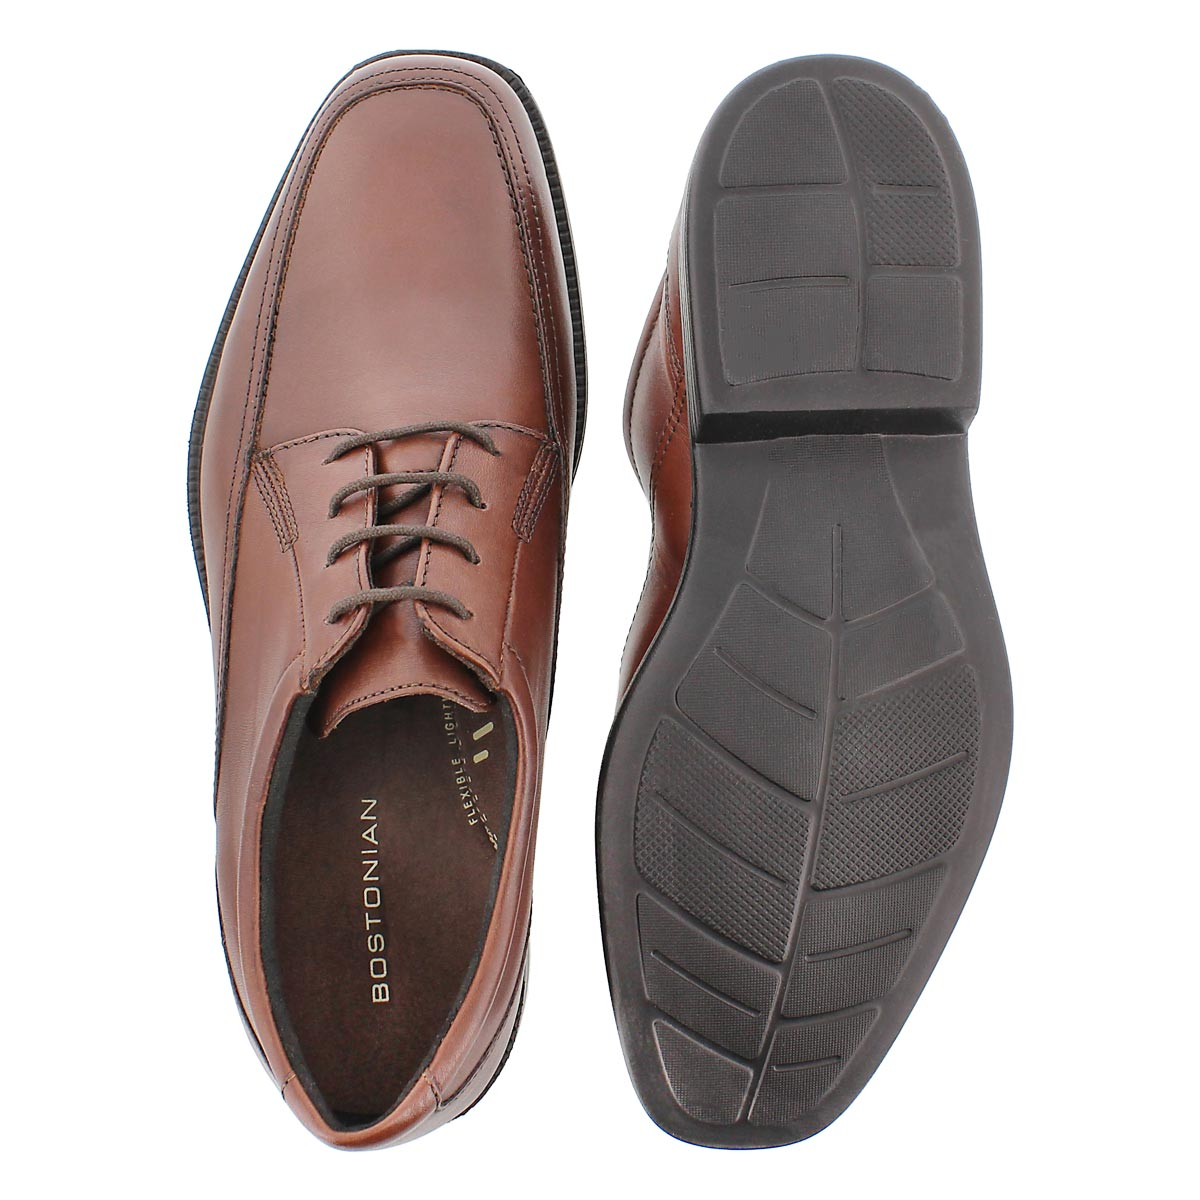 Mens Ipswitch brown dress oxford